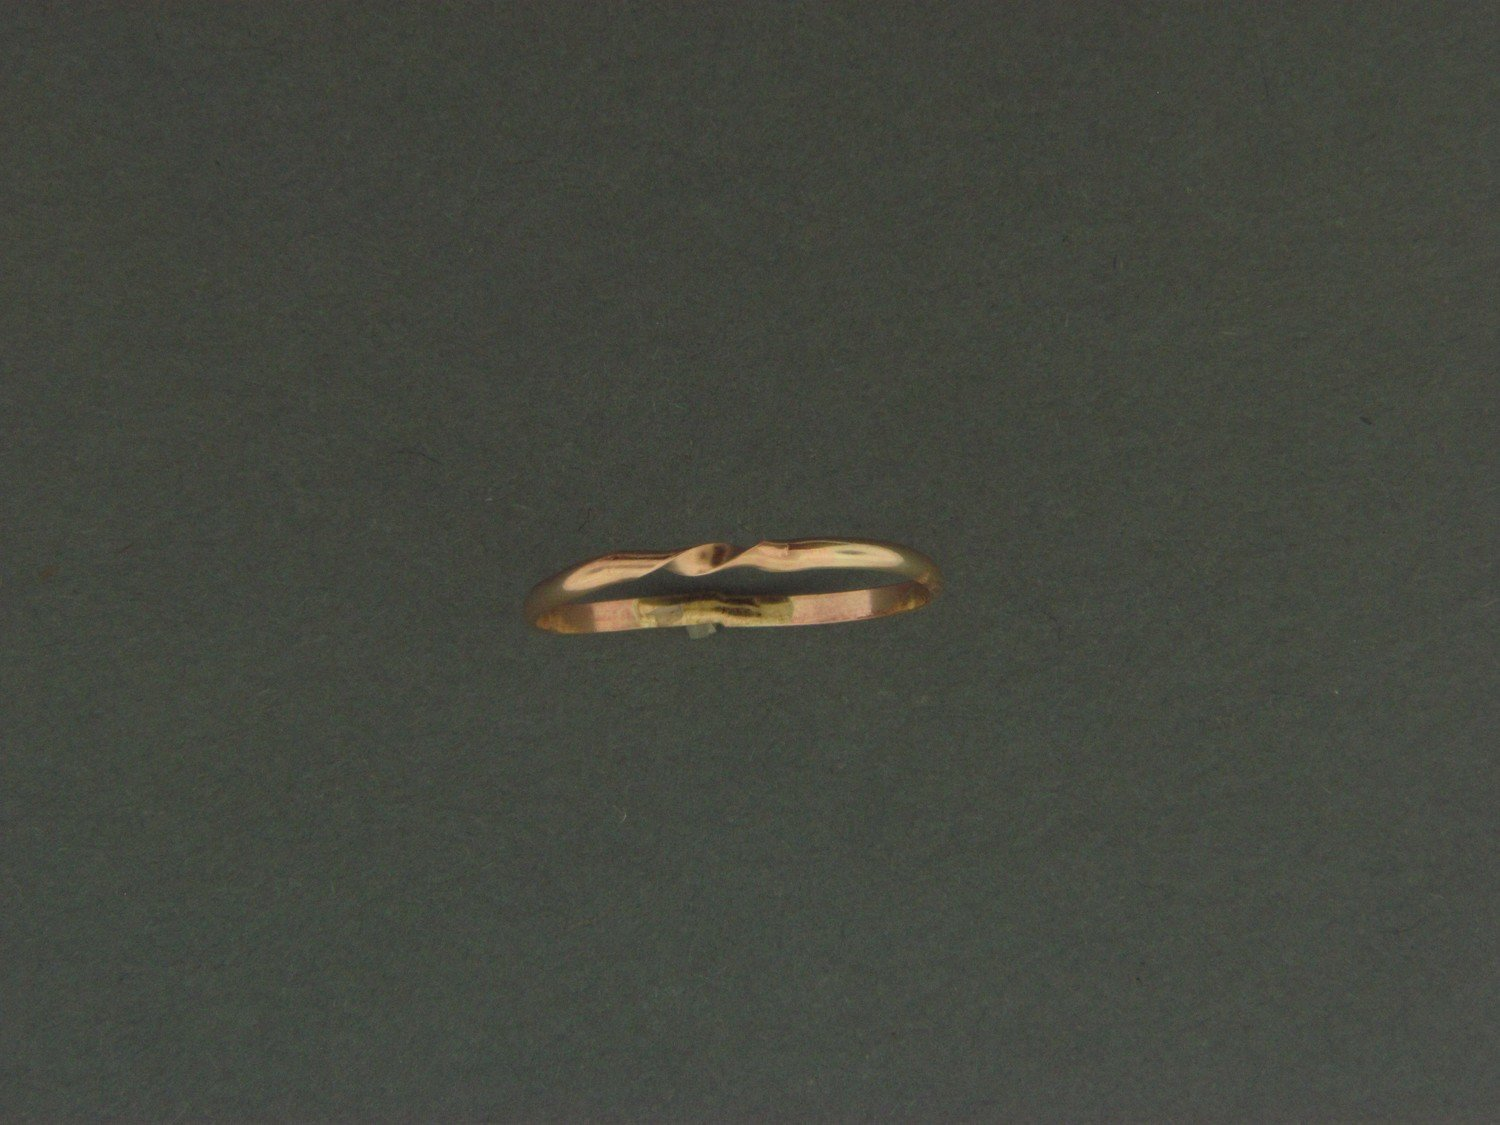 Gold Filled 1/2 Round Middle Twist Skinny Ring